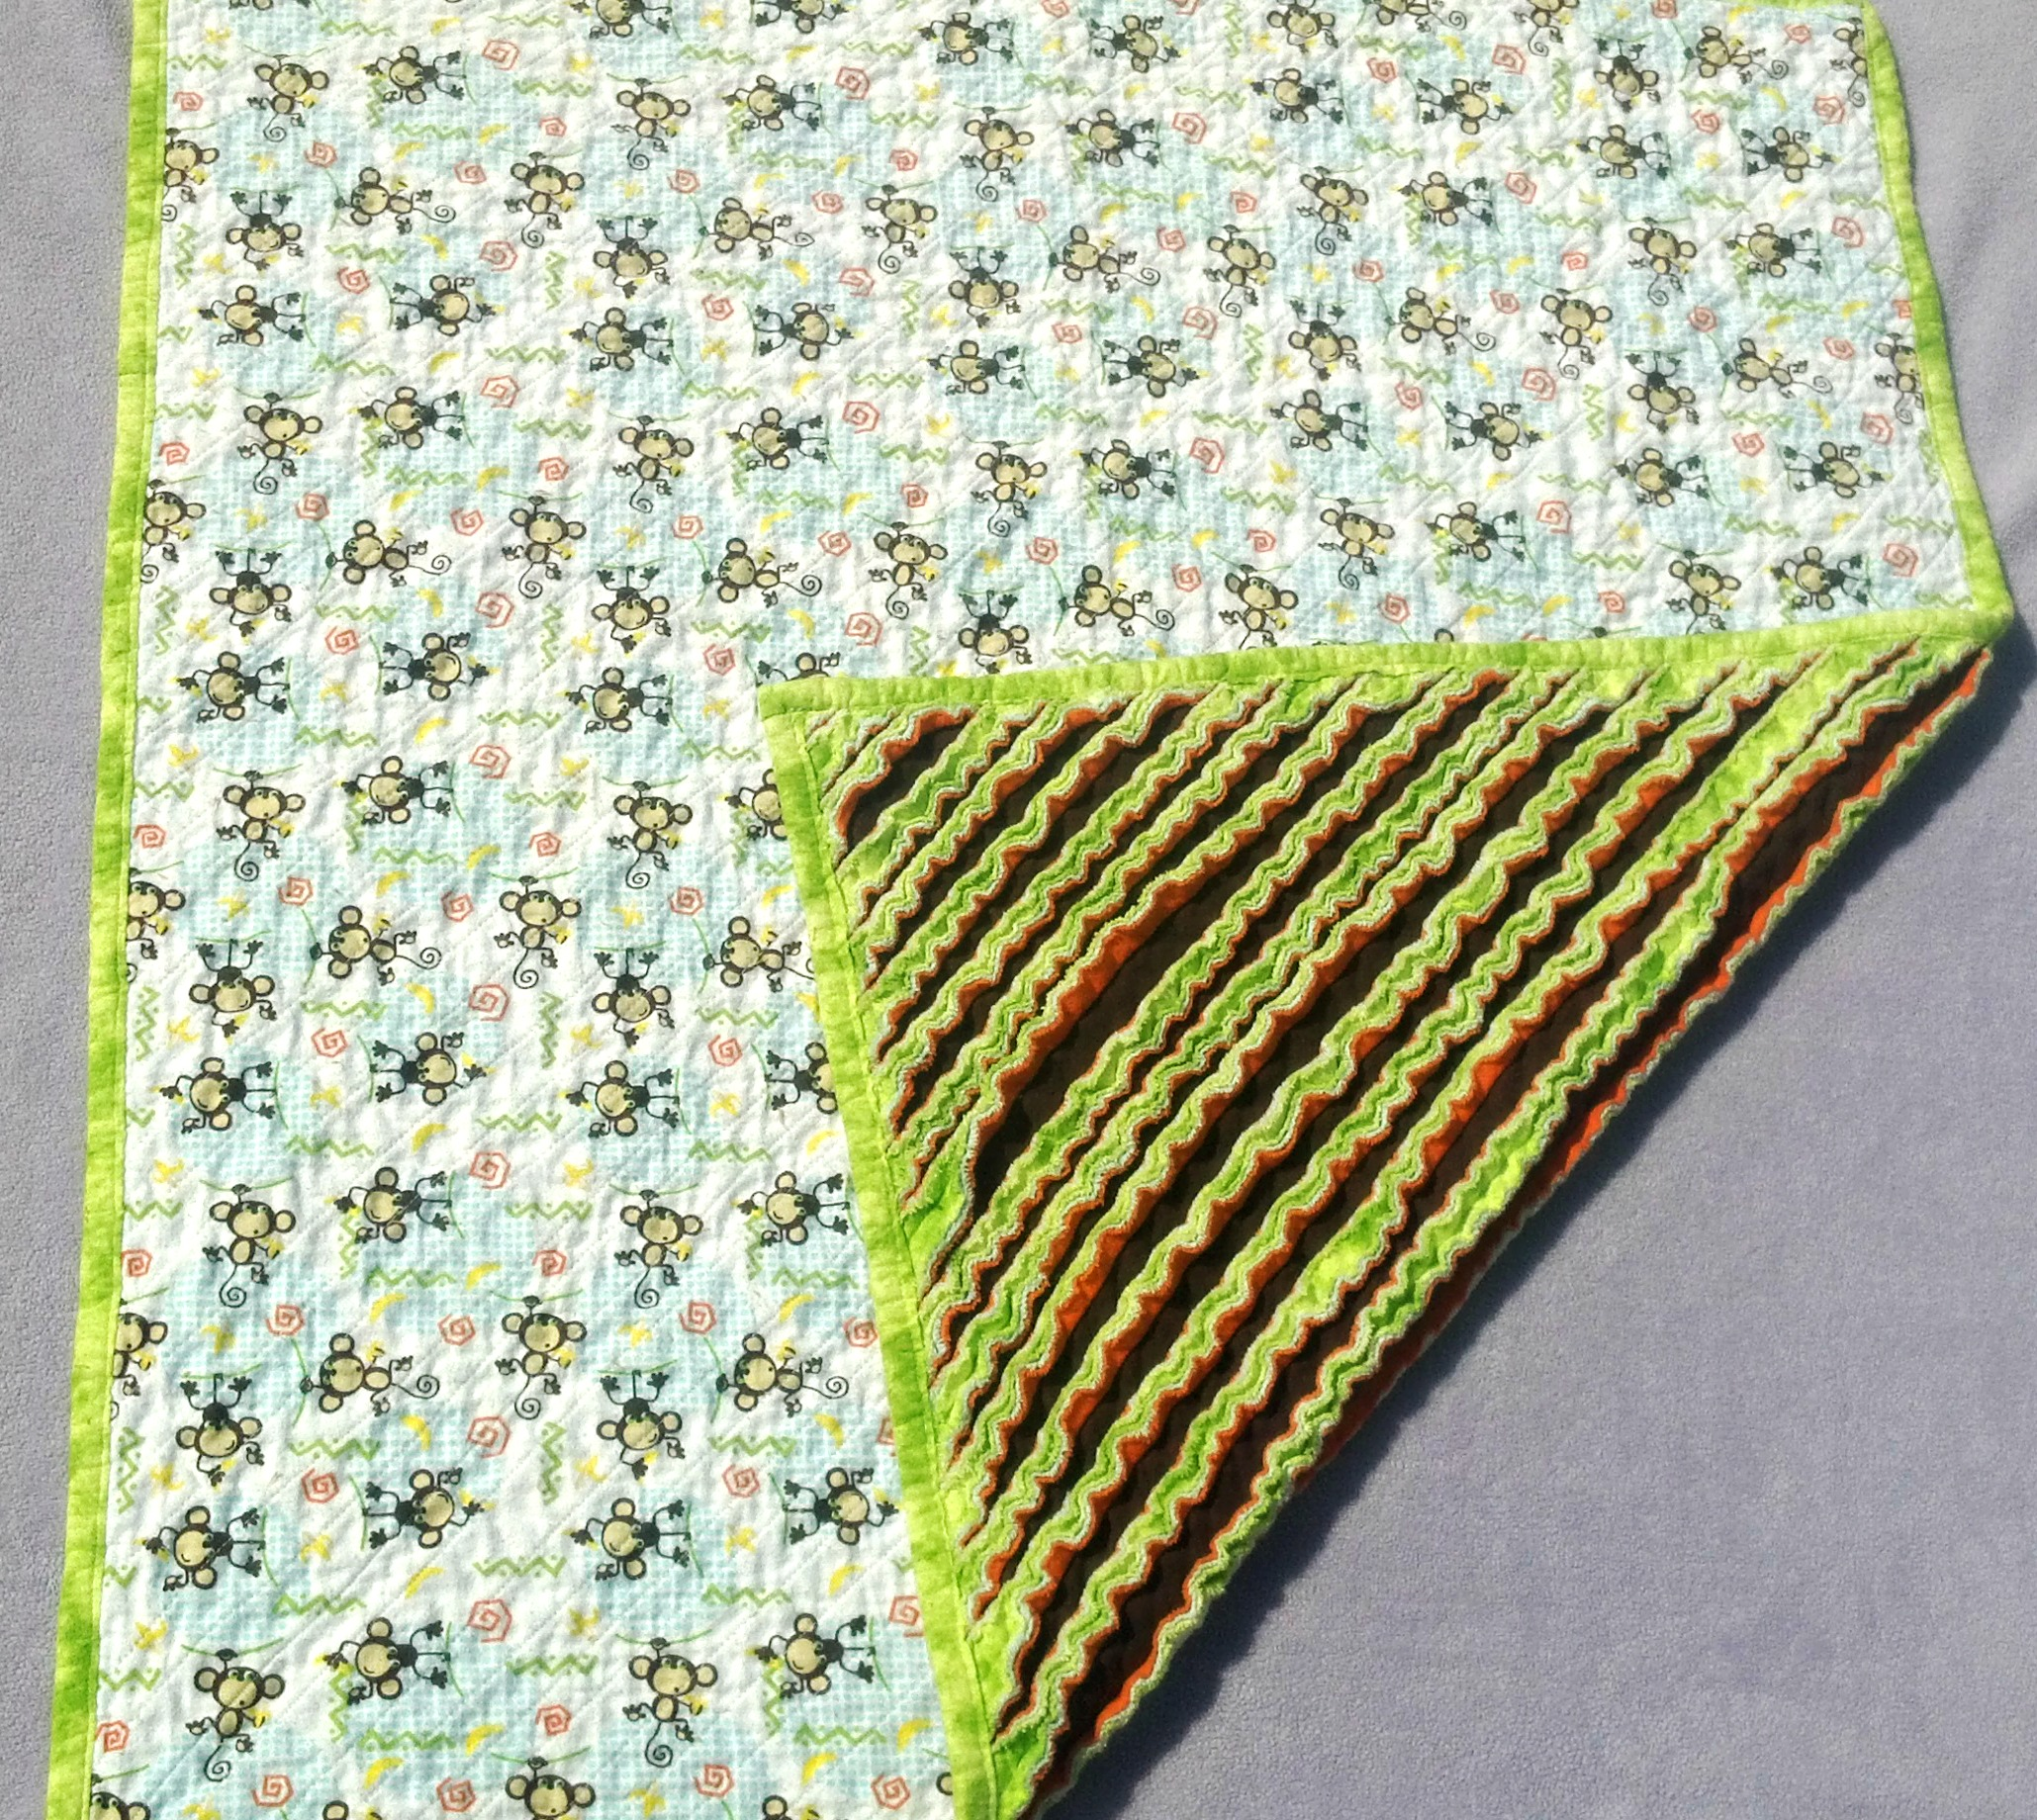 chenille blanket in double surface for charming blanket ideas